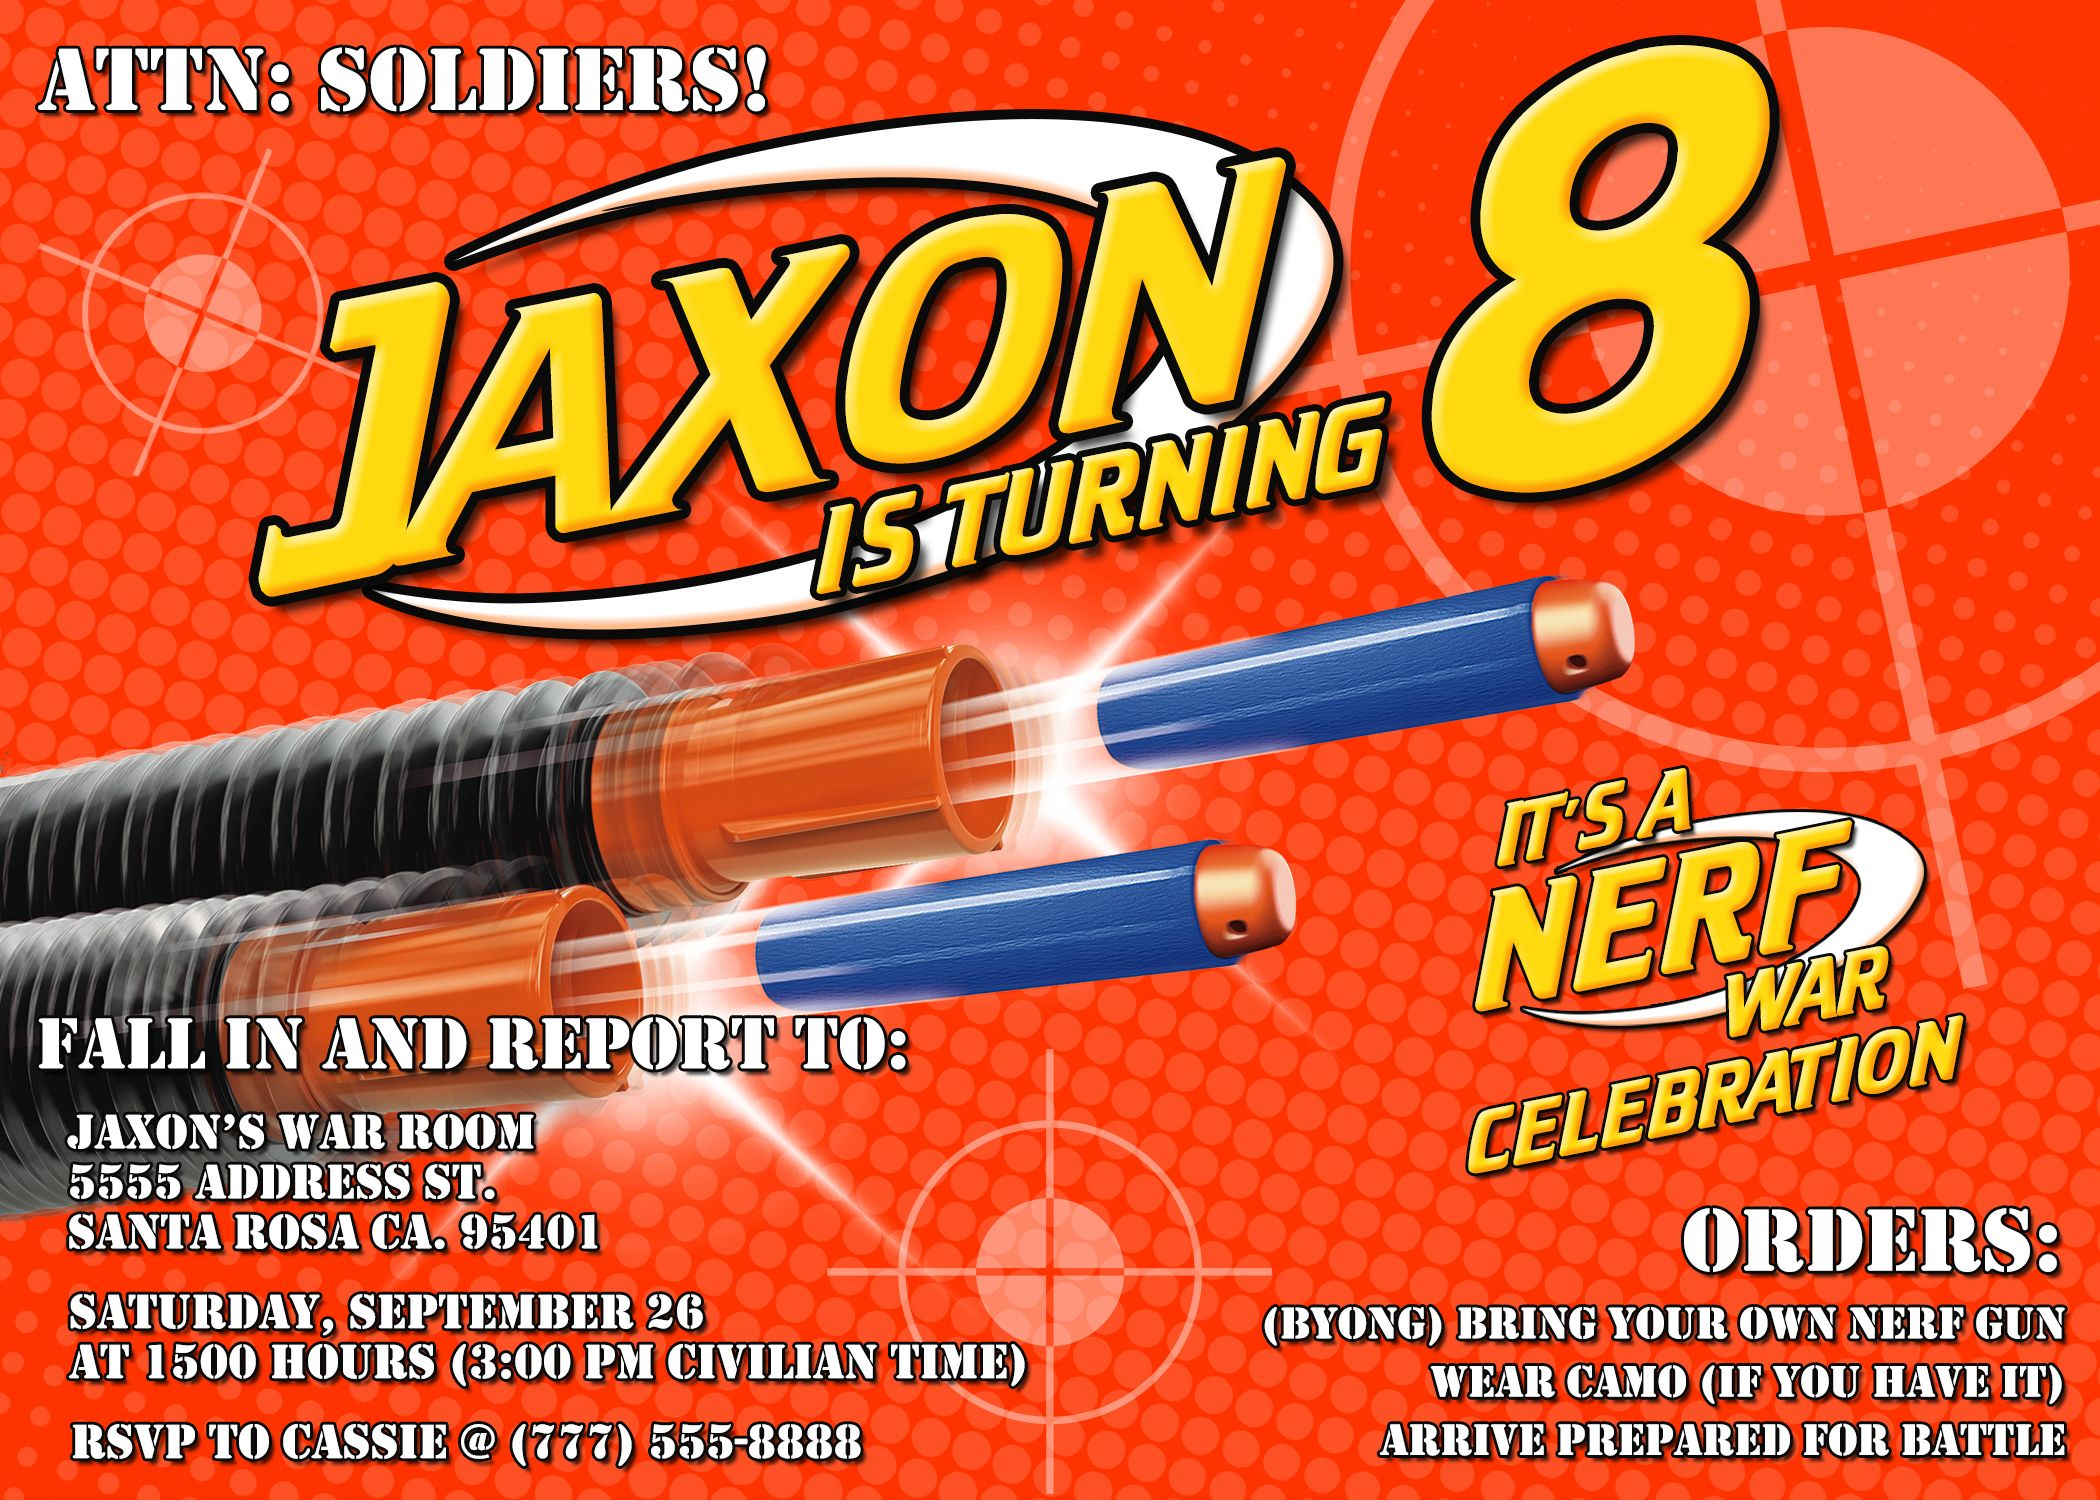 Nerf Birthday Party Invitations Nerf Nerf party and Nerf war